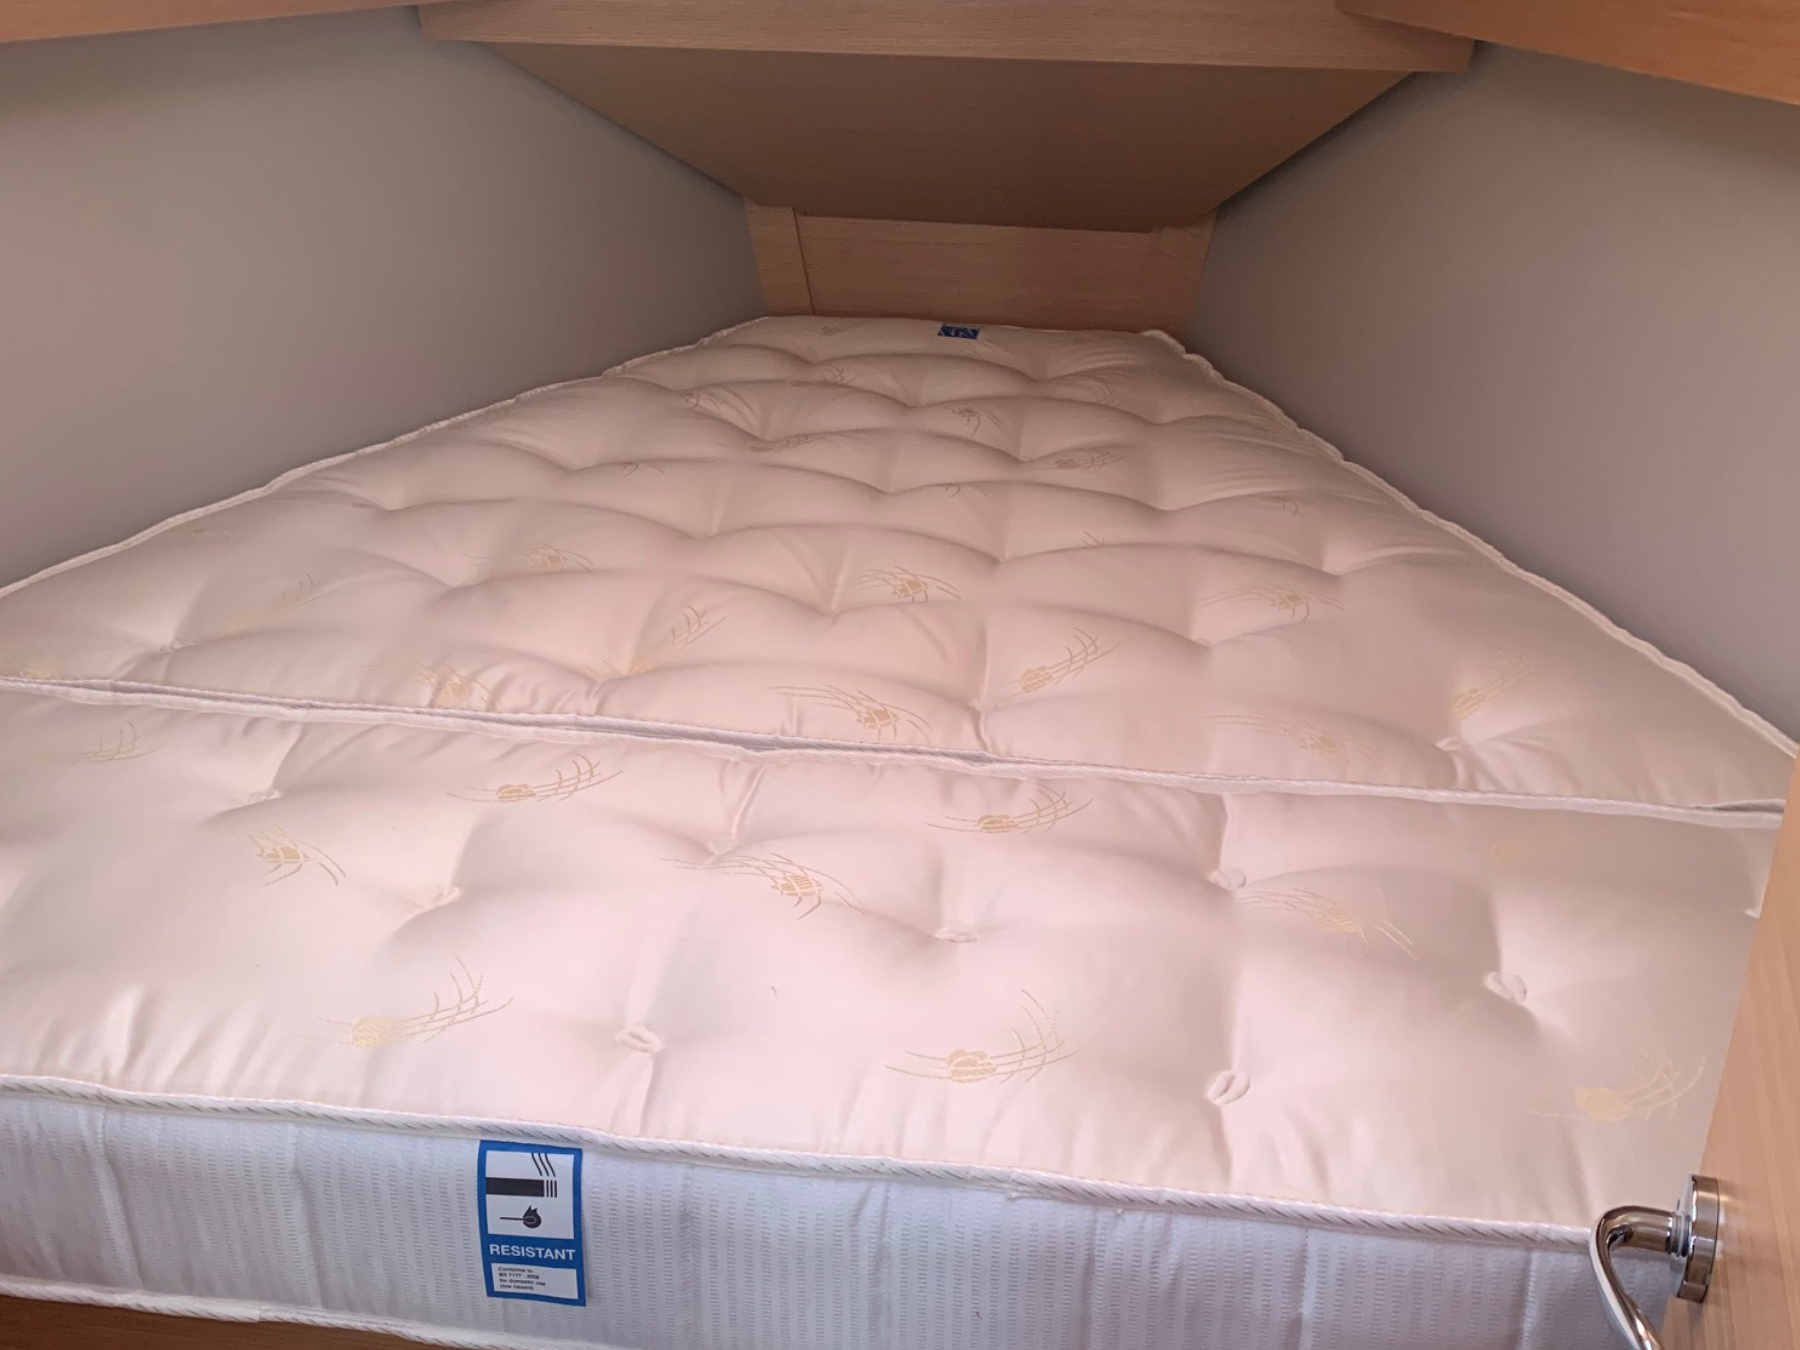 V-Berth Pocket Sprung Mattress